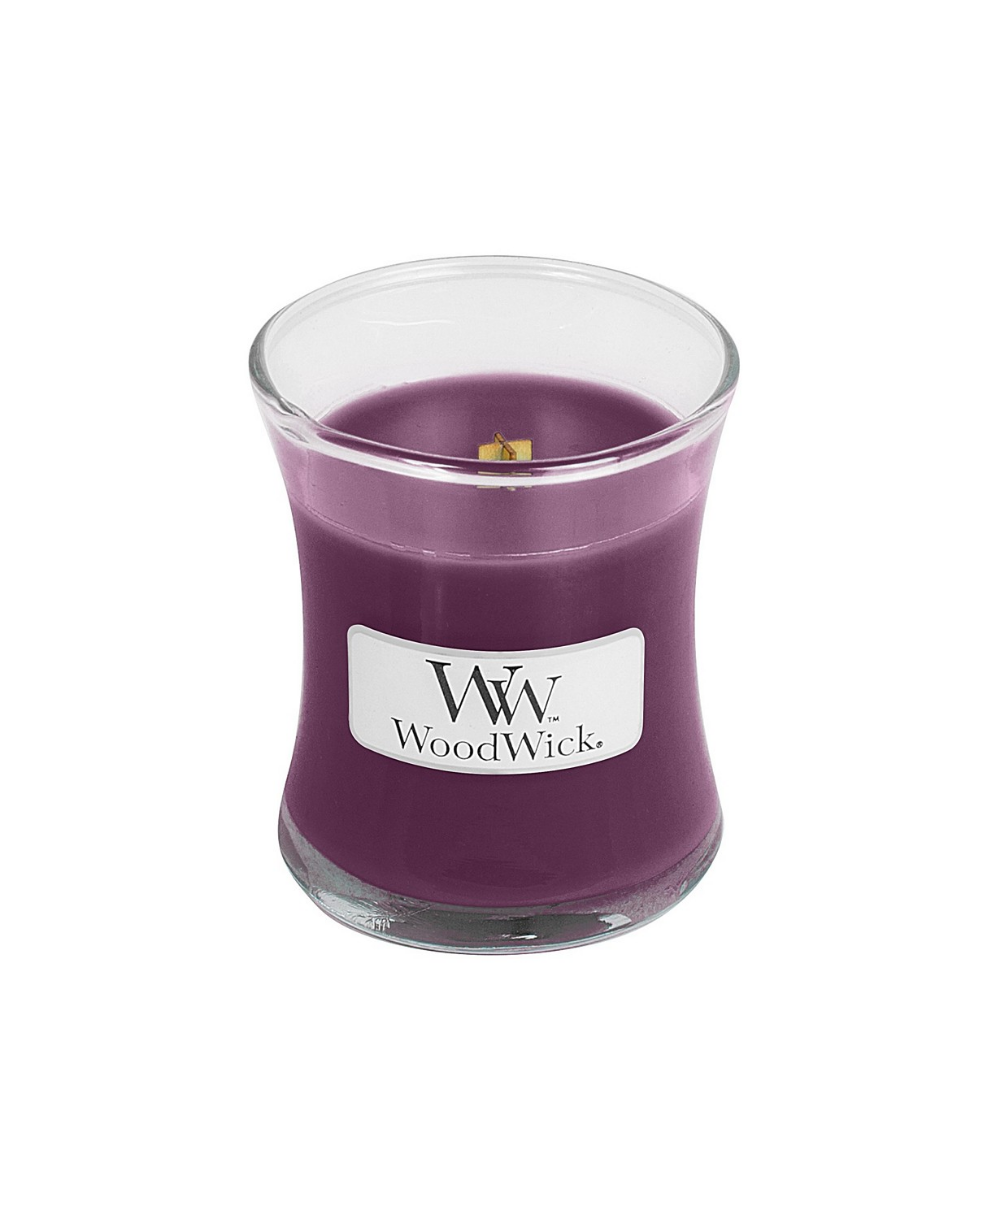 Fall Image By Melanie Gosling Wood Wick Candles Woodwick Candles